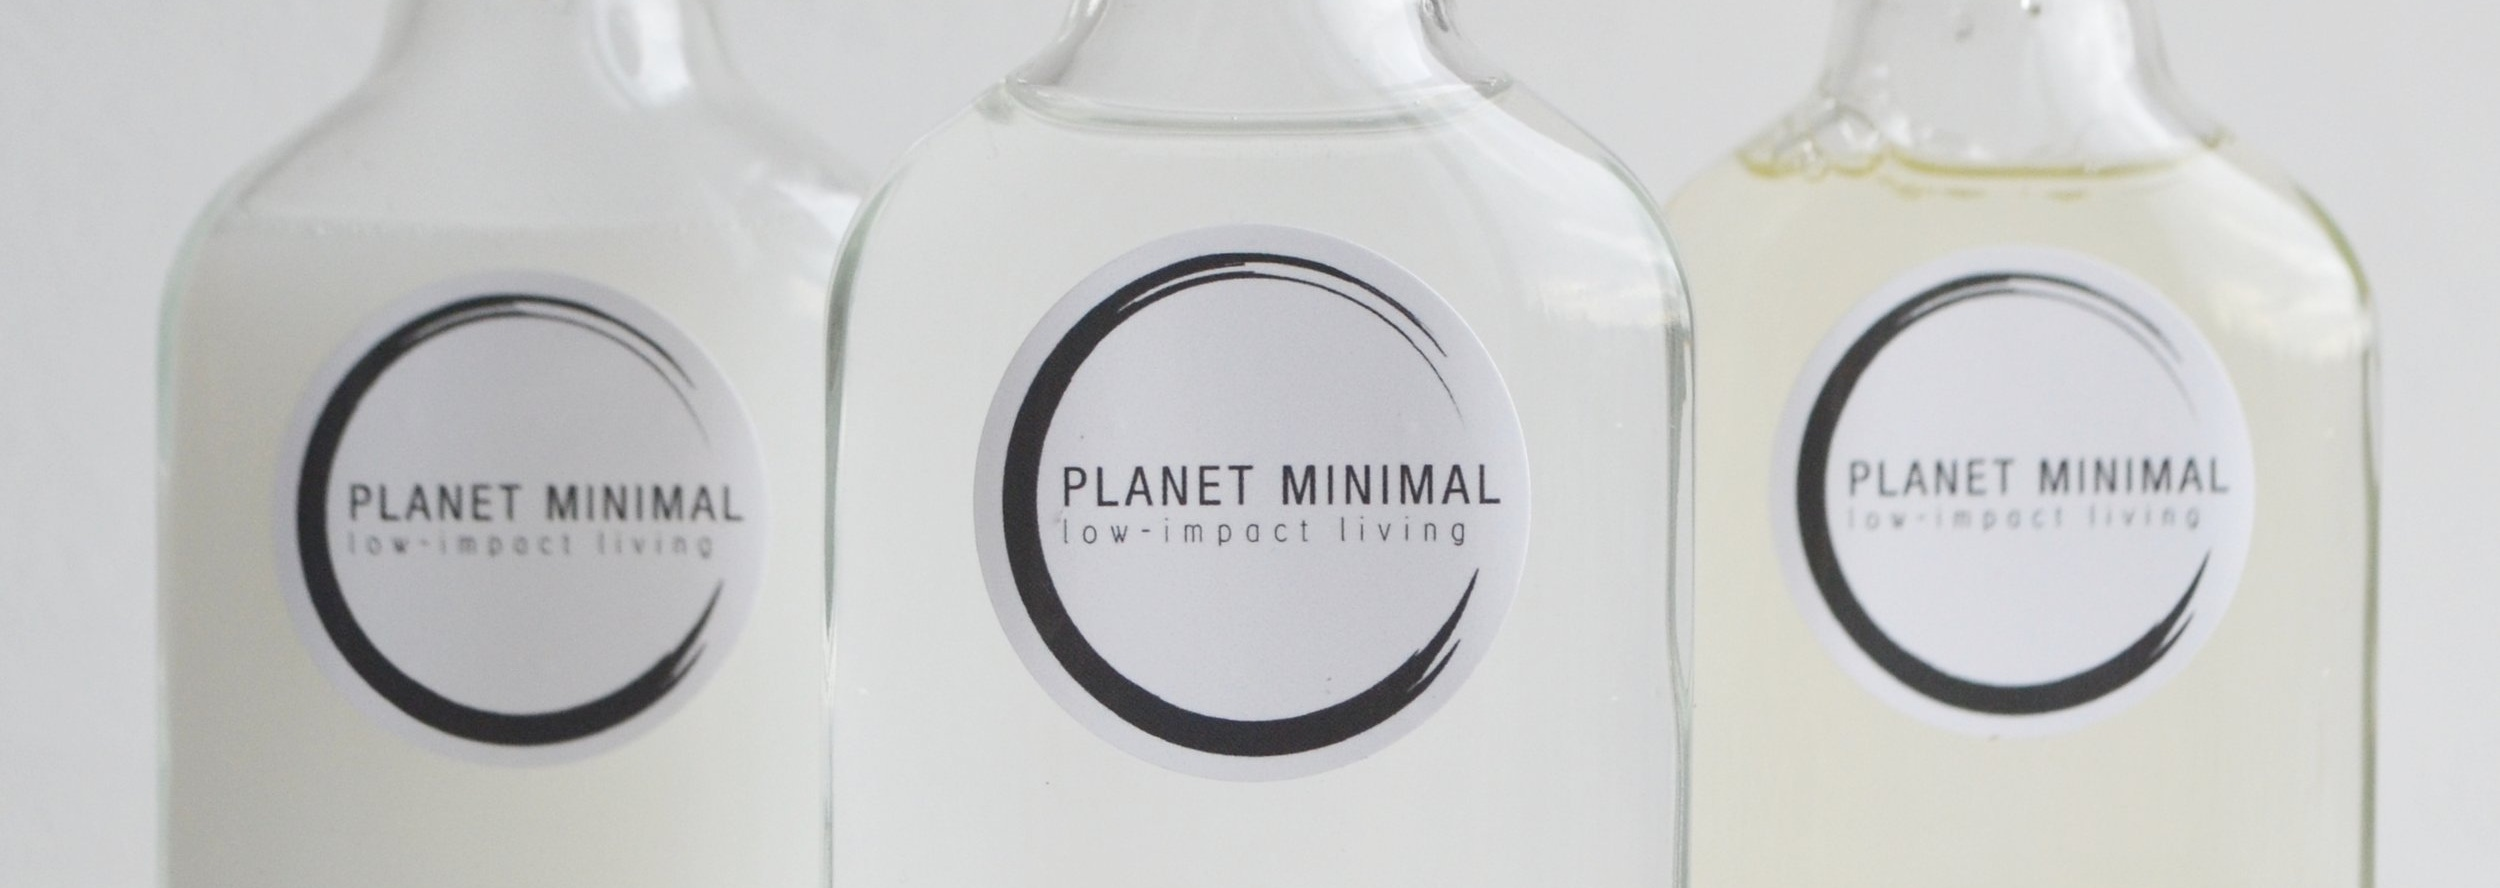 Planet Minimal - free from animal products and cruelty-free